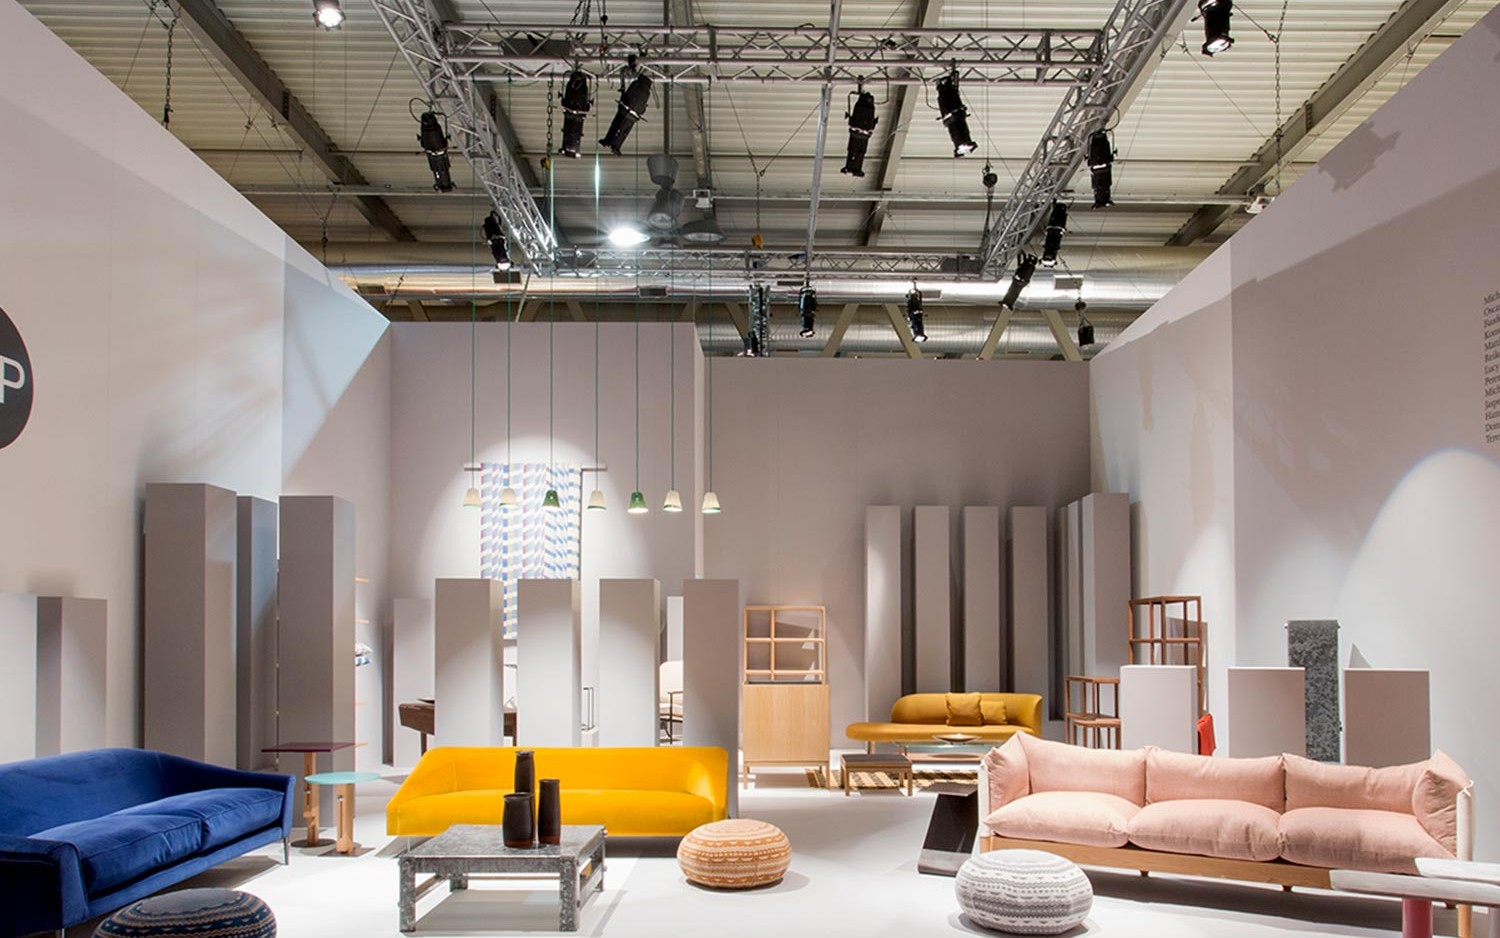 Salone del mobile milano 2016 scp life for Fiera del mobile 2016 milano